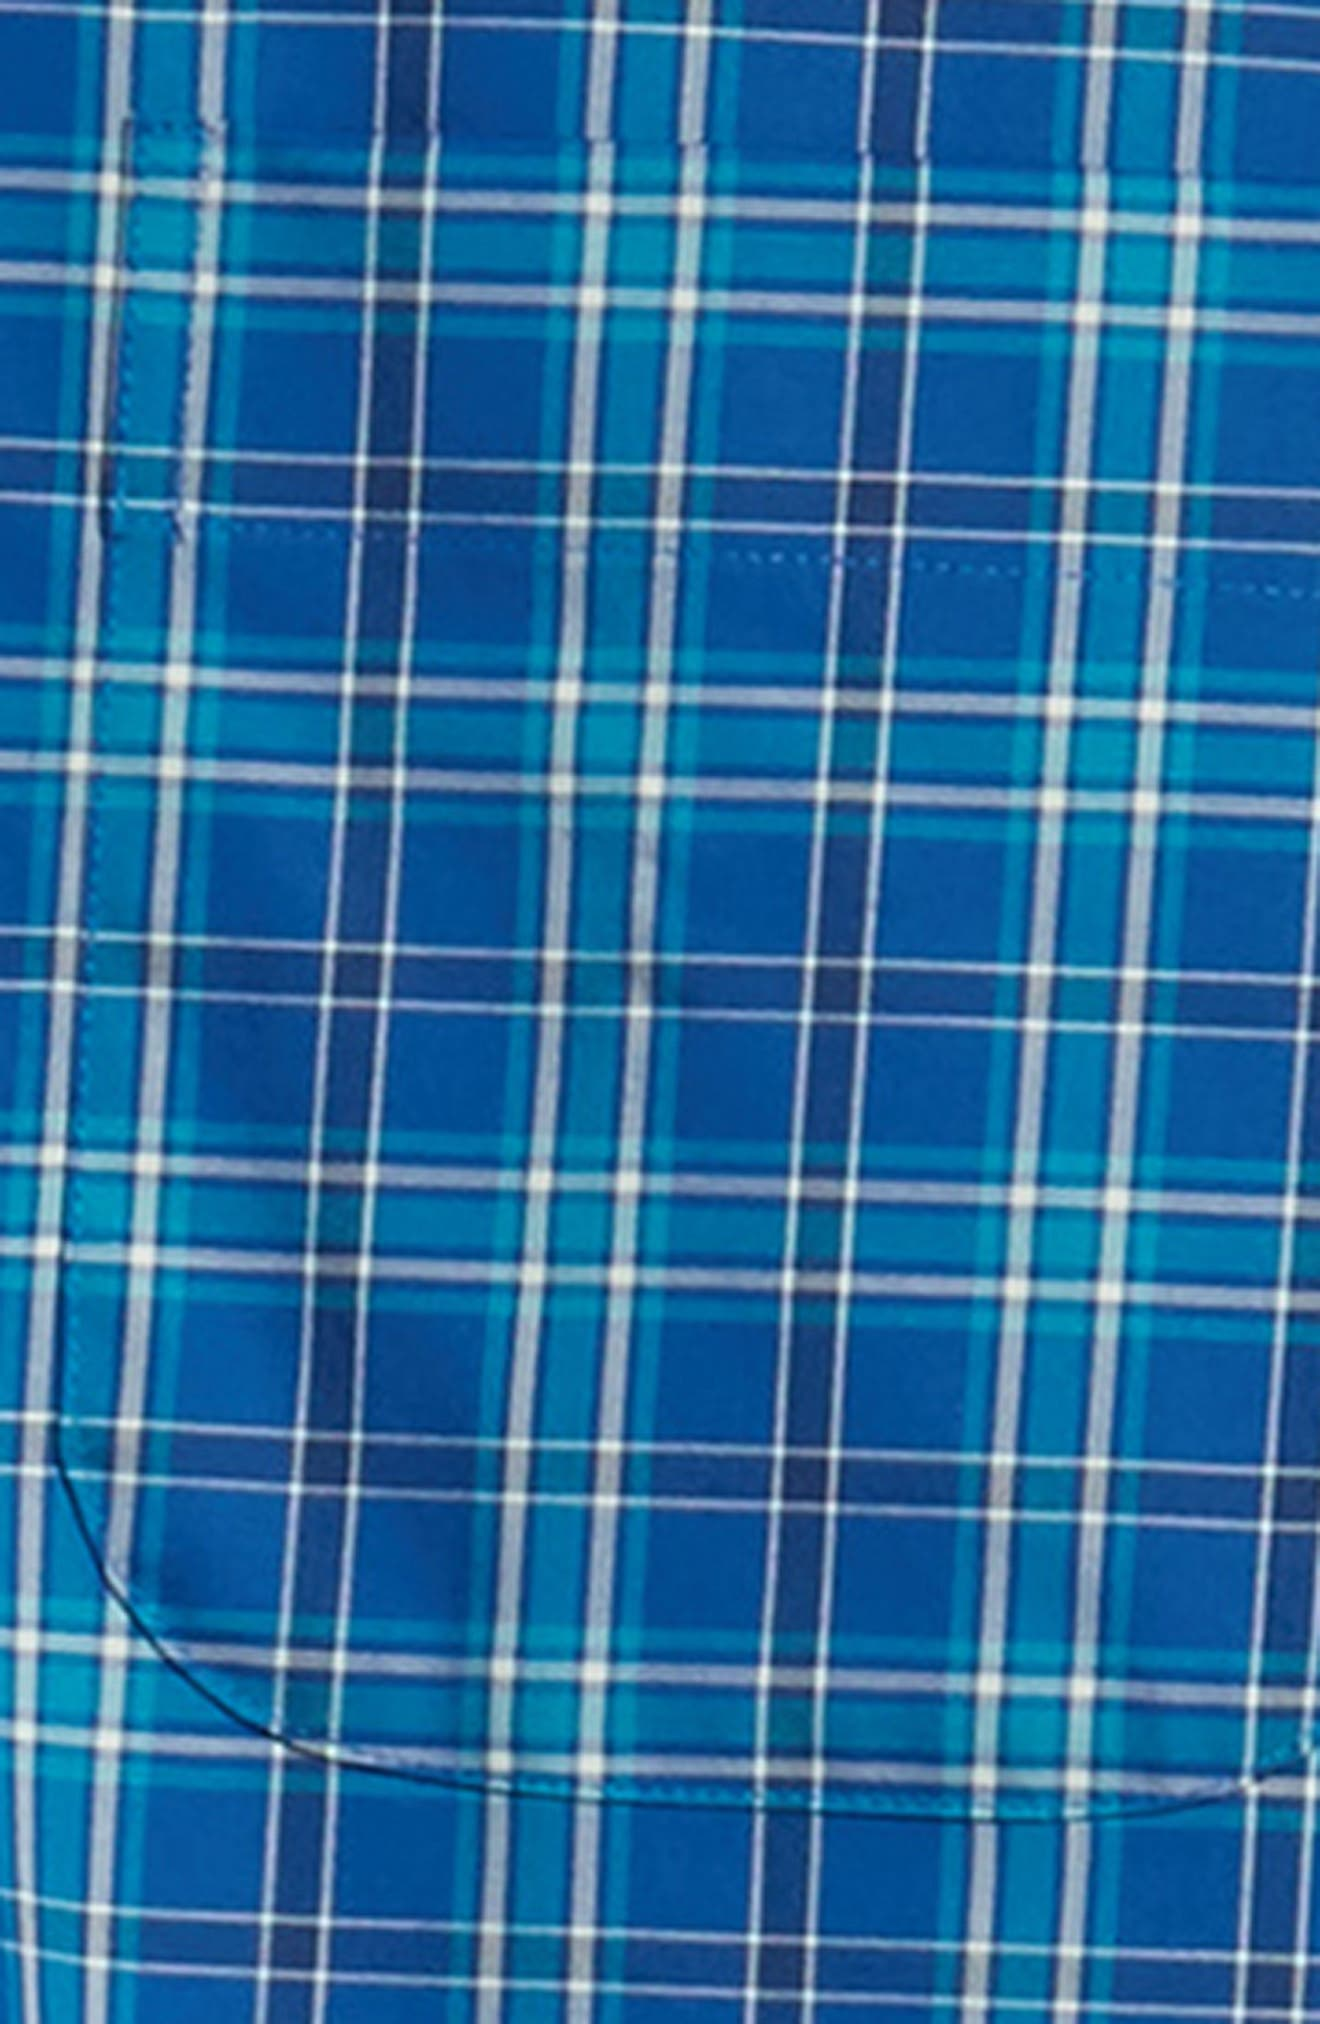 Crown Ease Salamanca Regular Fit Plaid Sport Shirt,                             Alternate thumbnail 6, color,                             BLUE